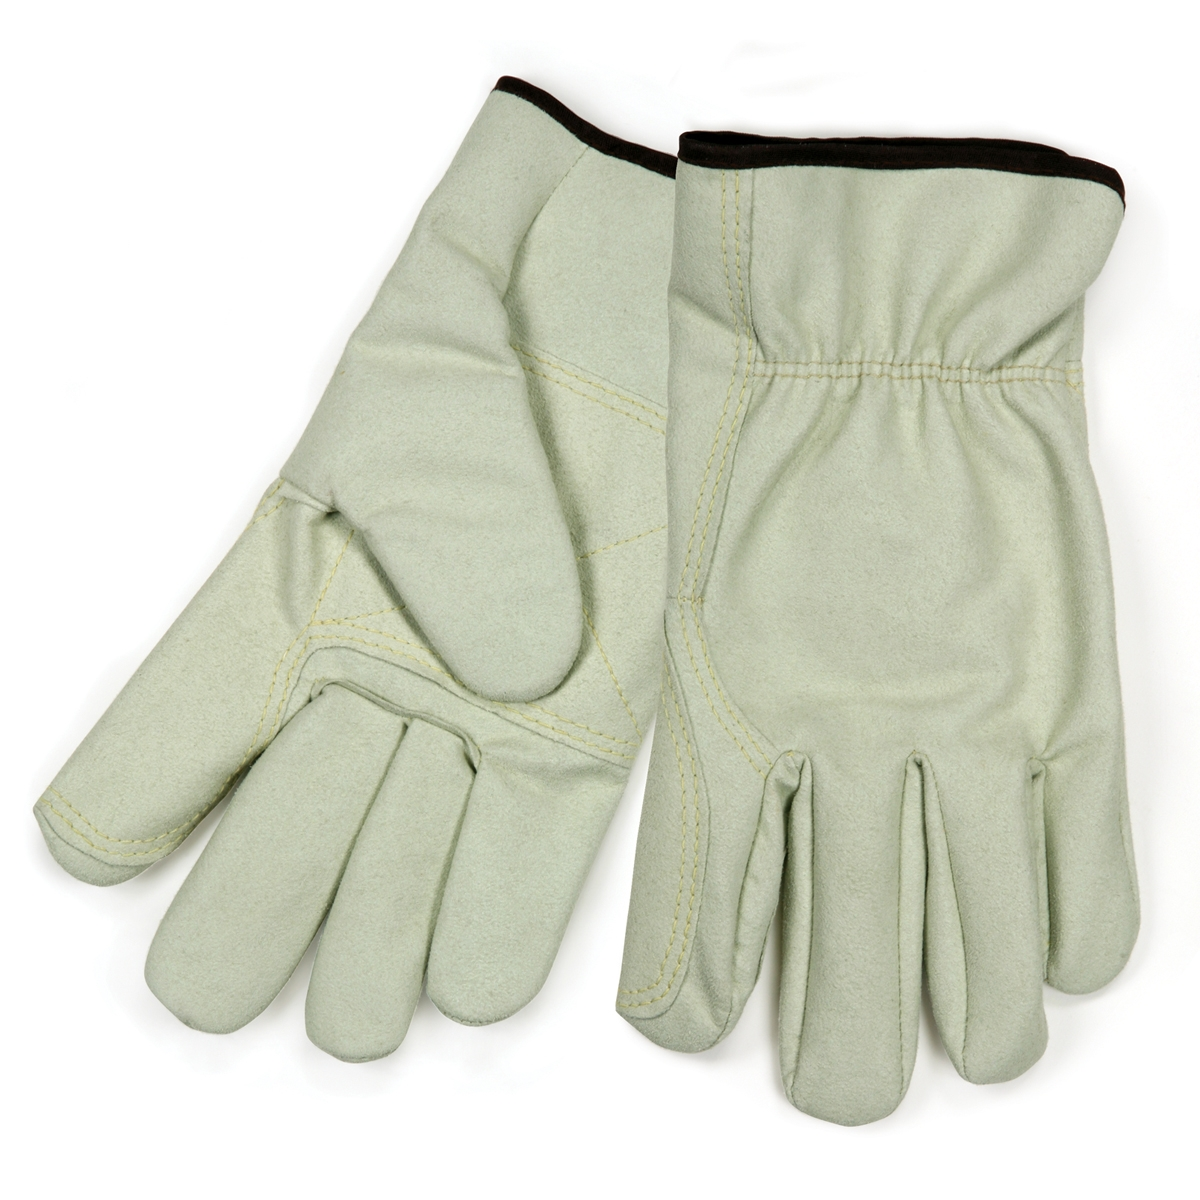 Synthetic leather driving gloves - Memphis 3750 Split Cow Texture Synthetic Leather Driver Gloves Double Palm